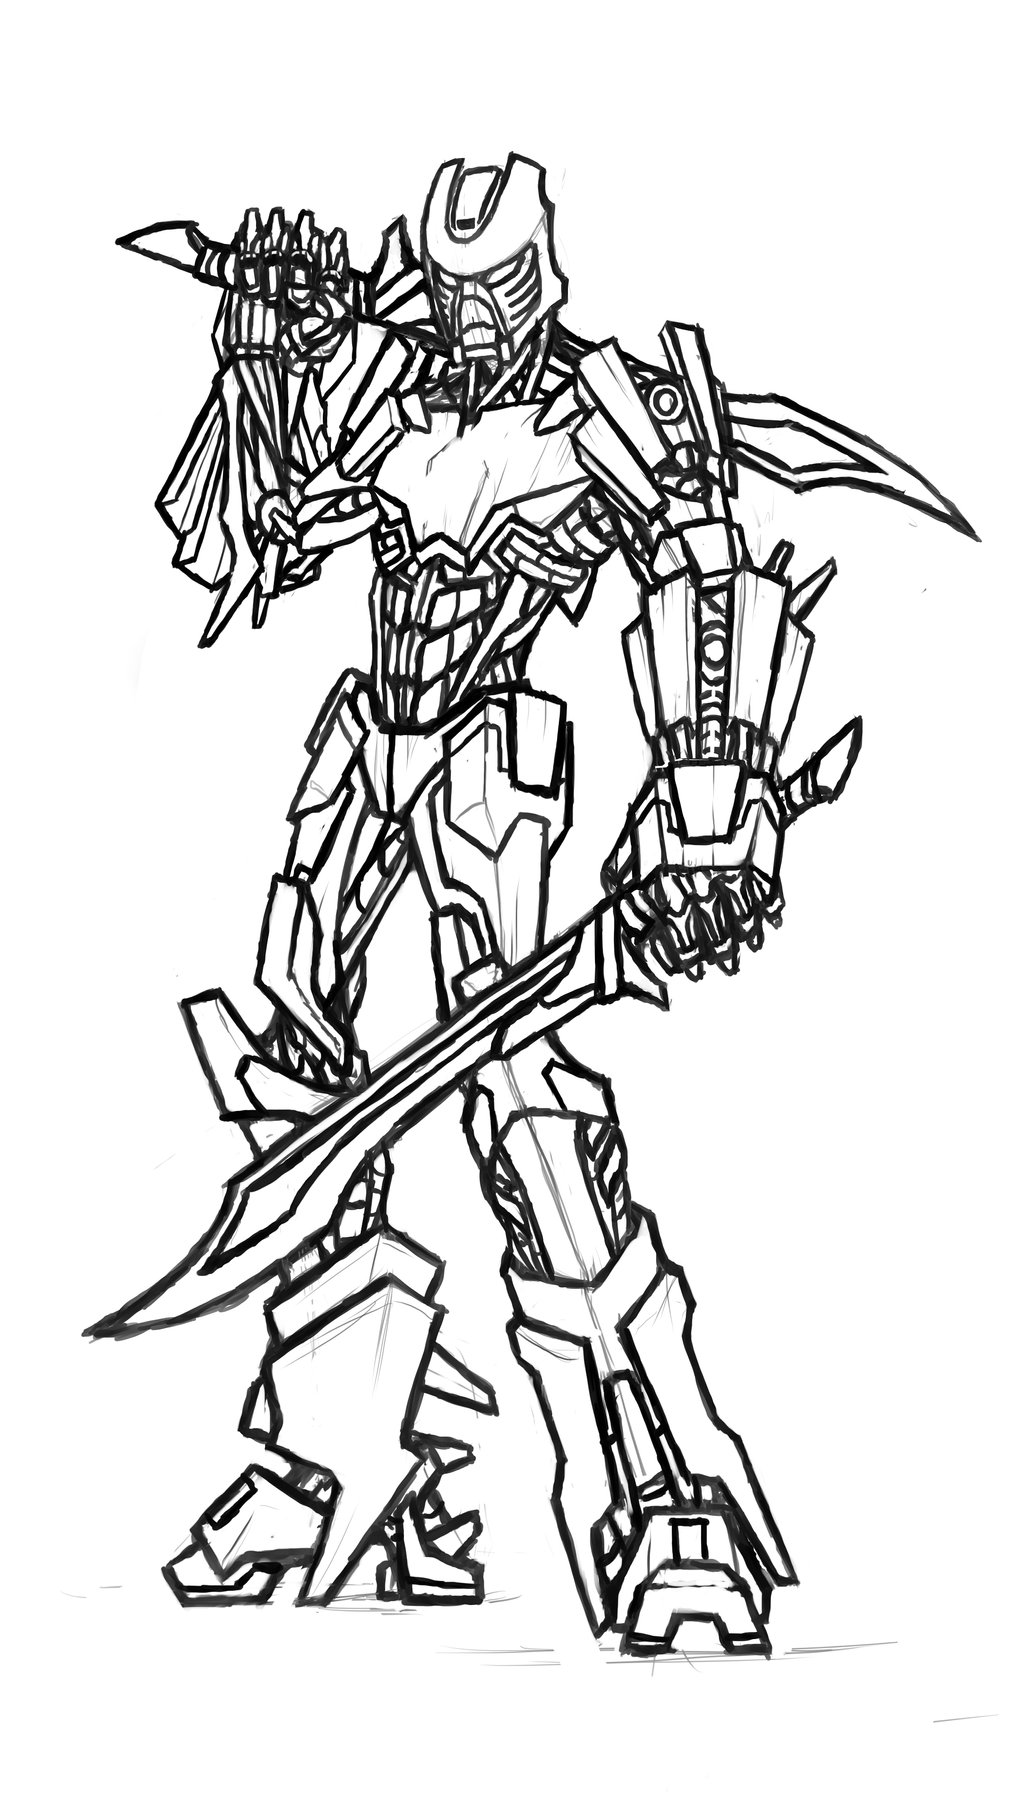 Bionicle 2015 coloring pages